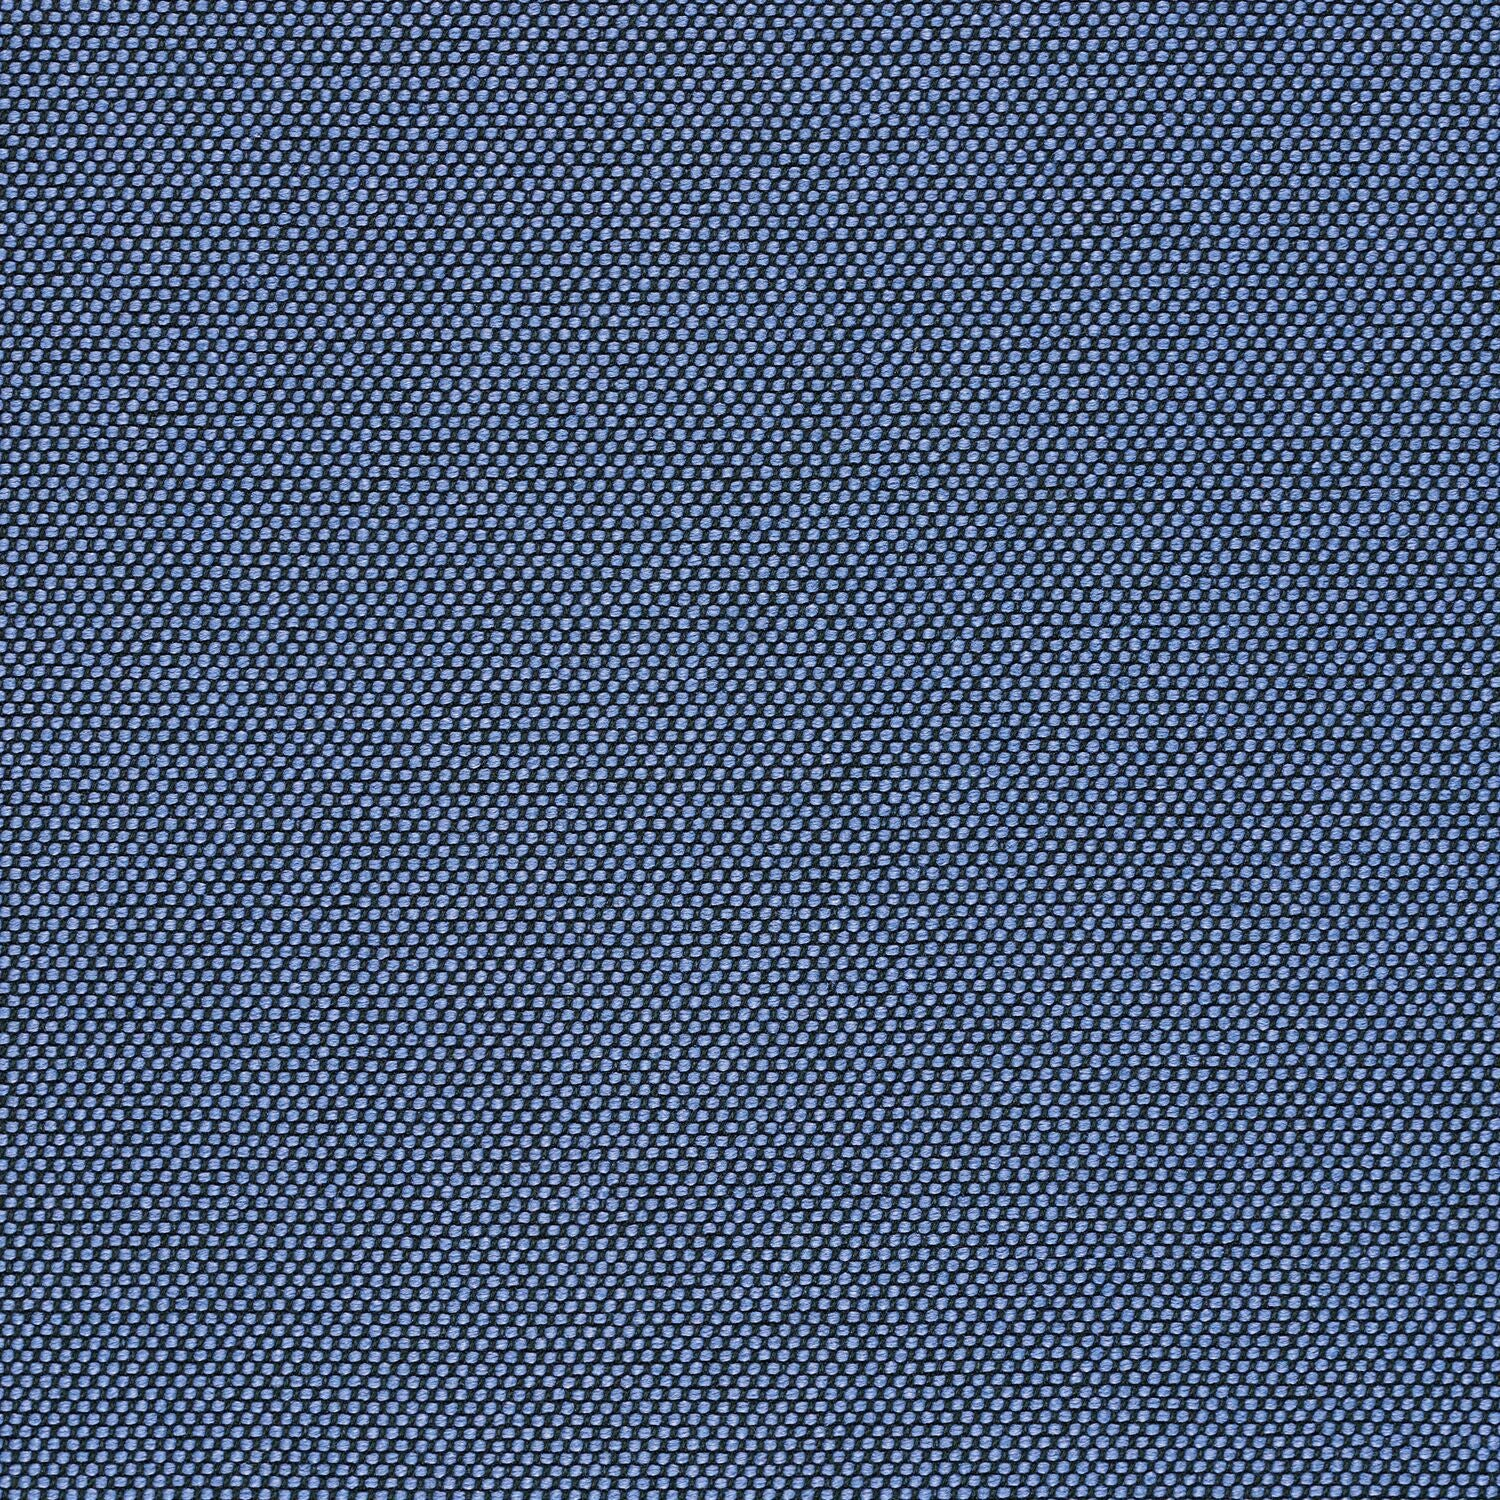 Flex Wool - Agile - 4081 - 08